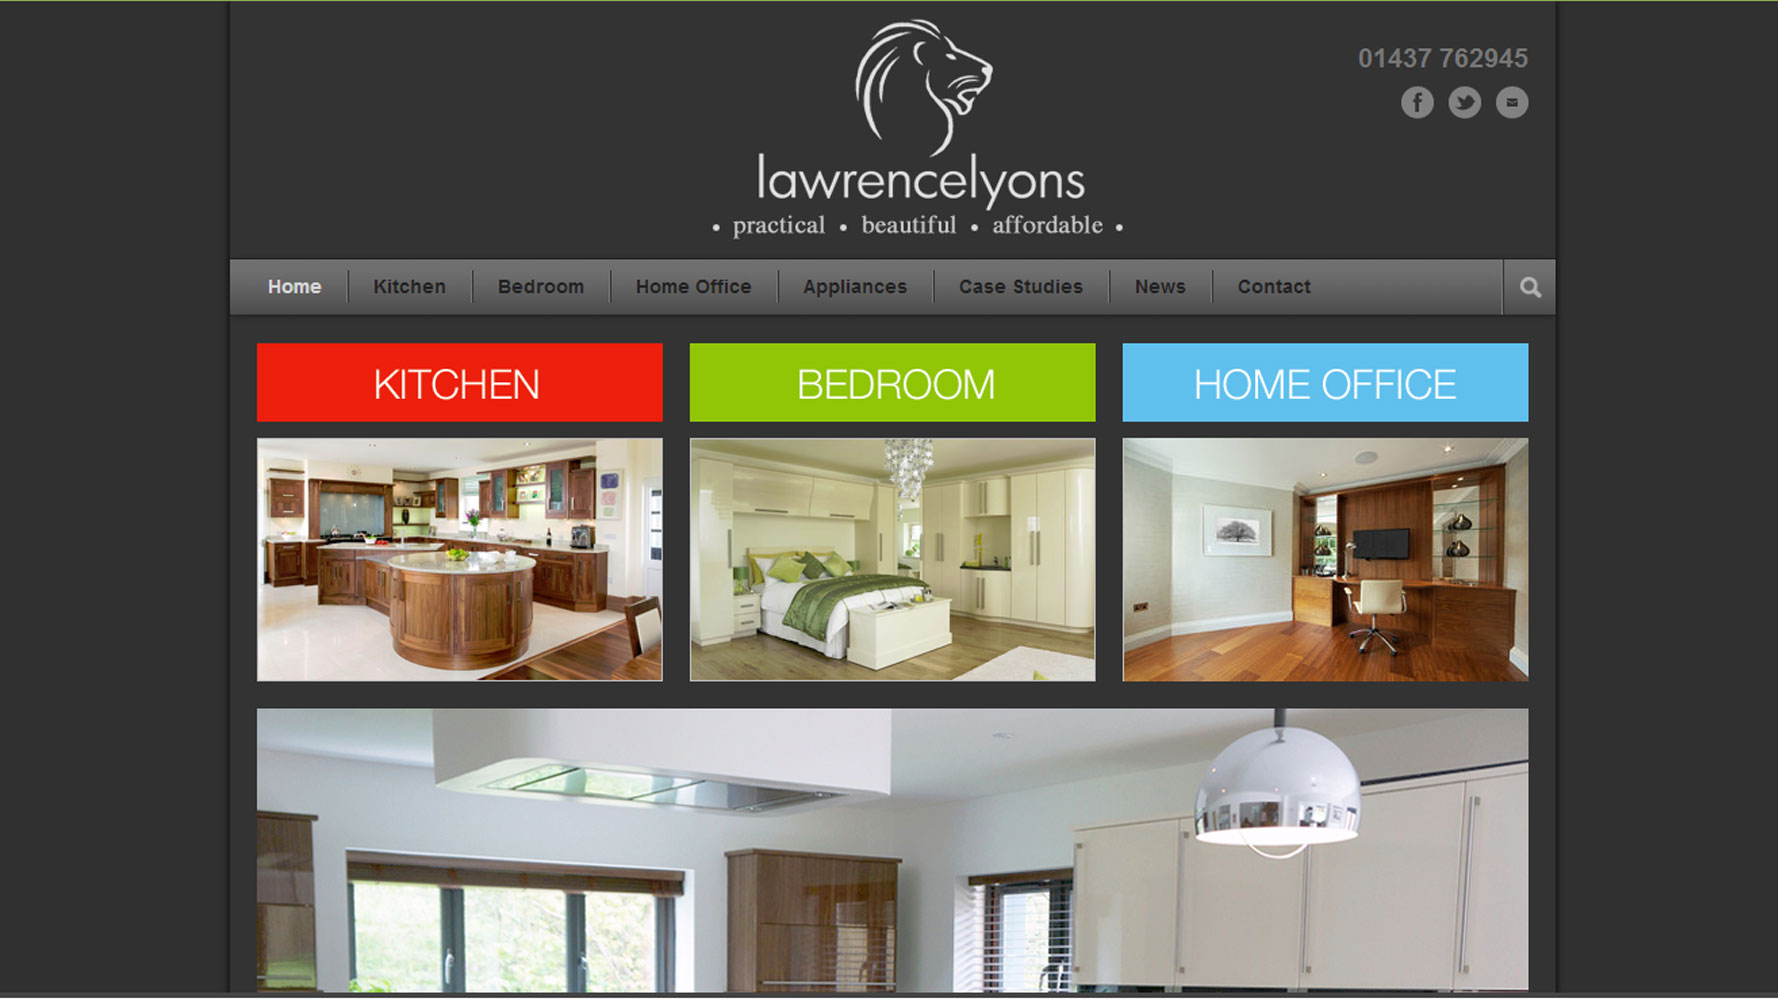 Lawrence Lyons homepage design, web design by Web Adept